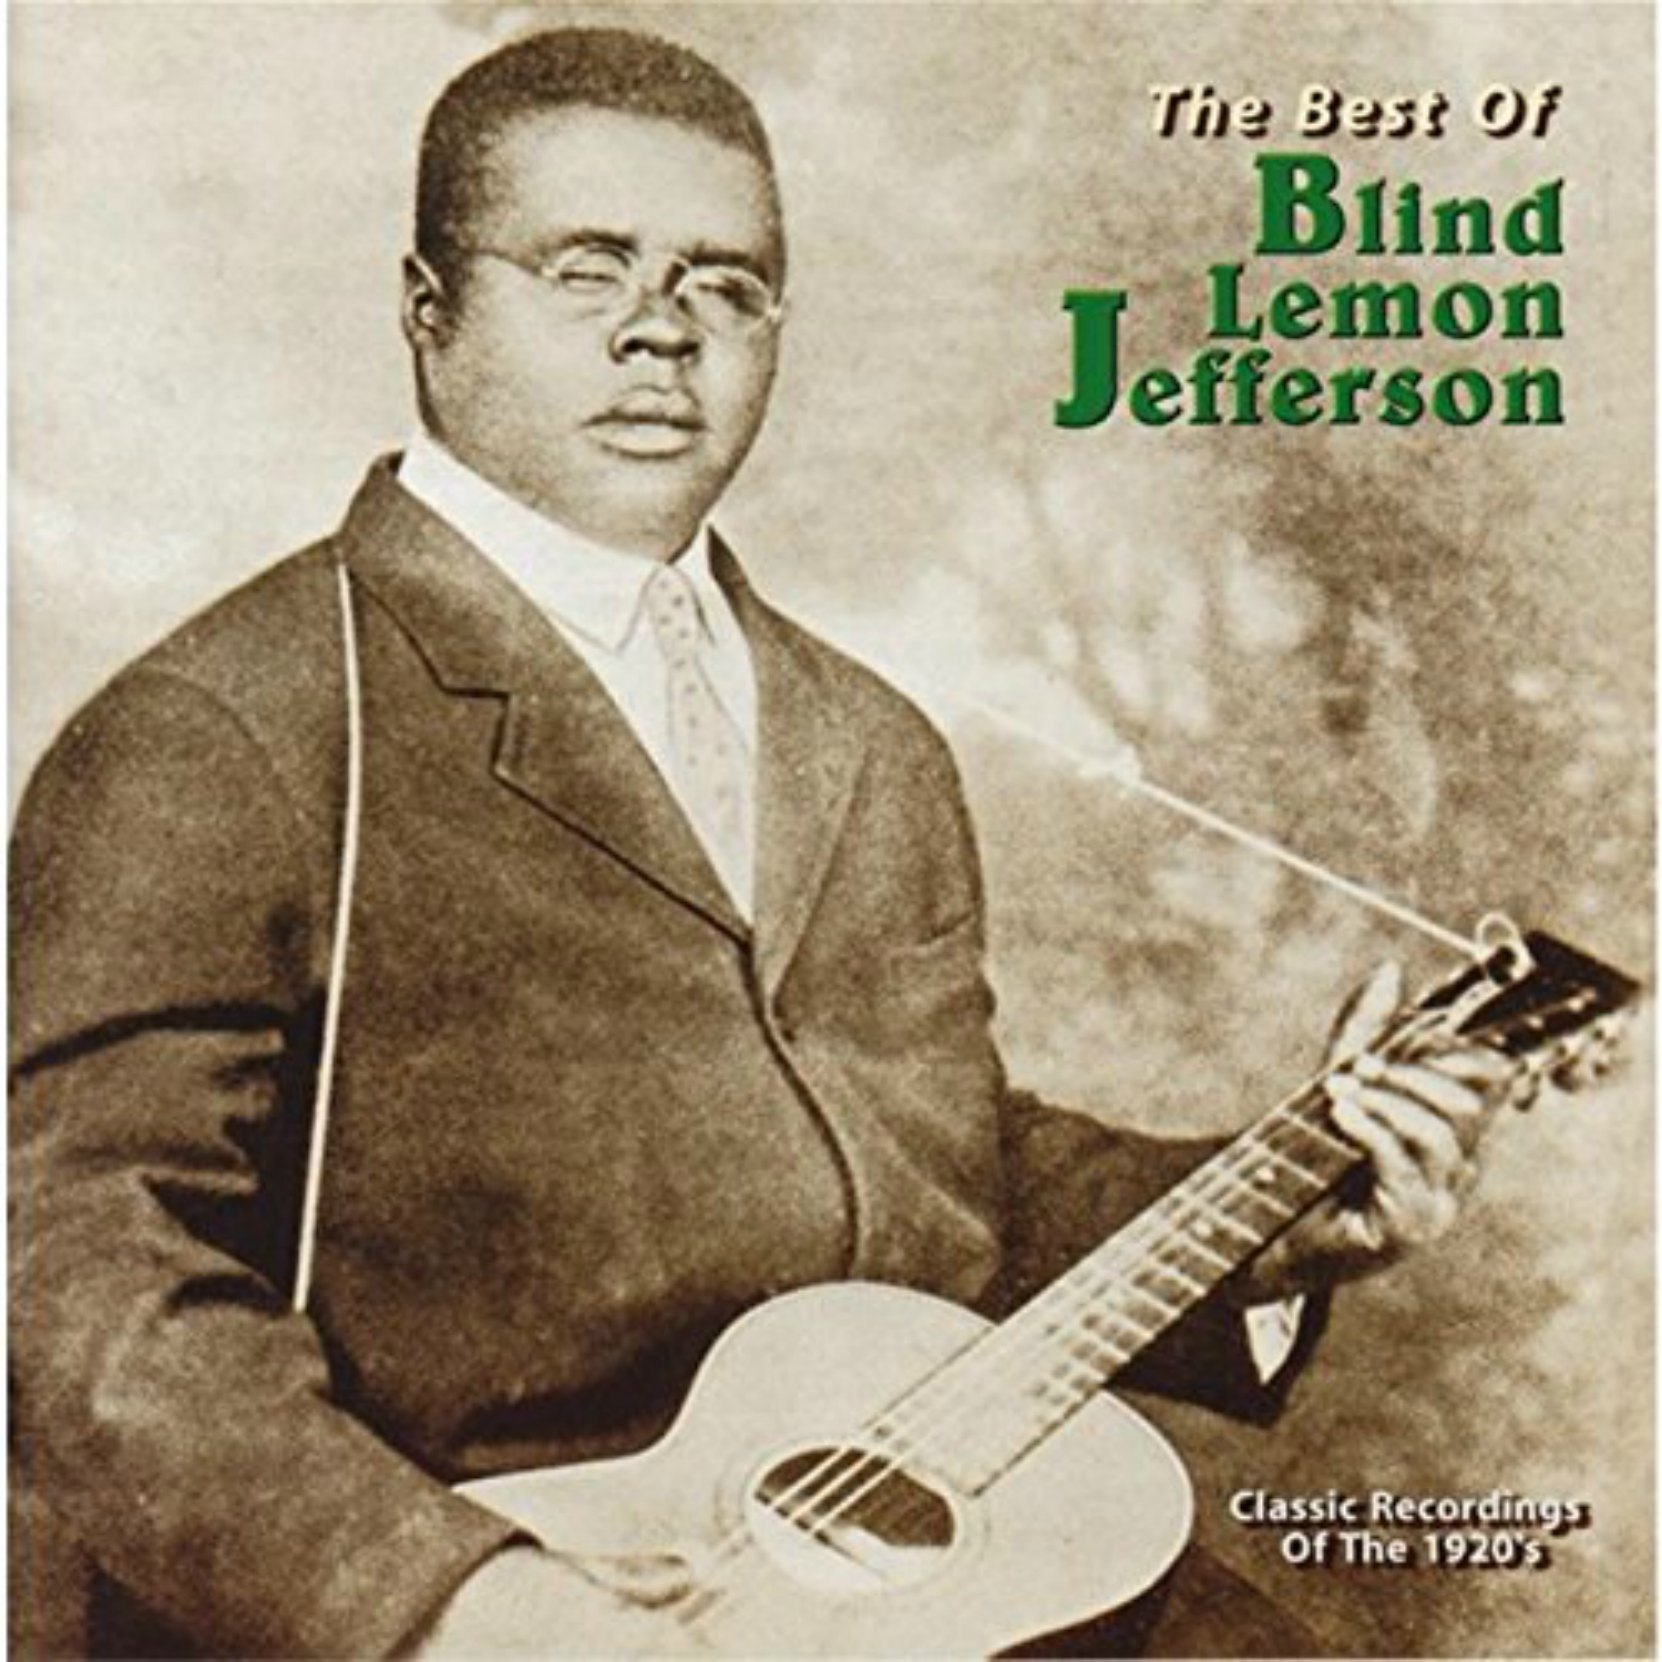 Blind Lemon Jefferson Best Of Blind Lemon Jefferson On